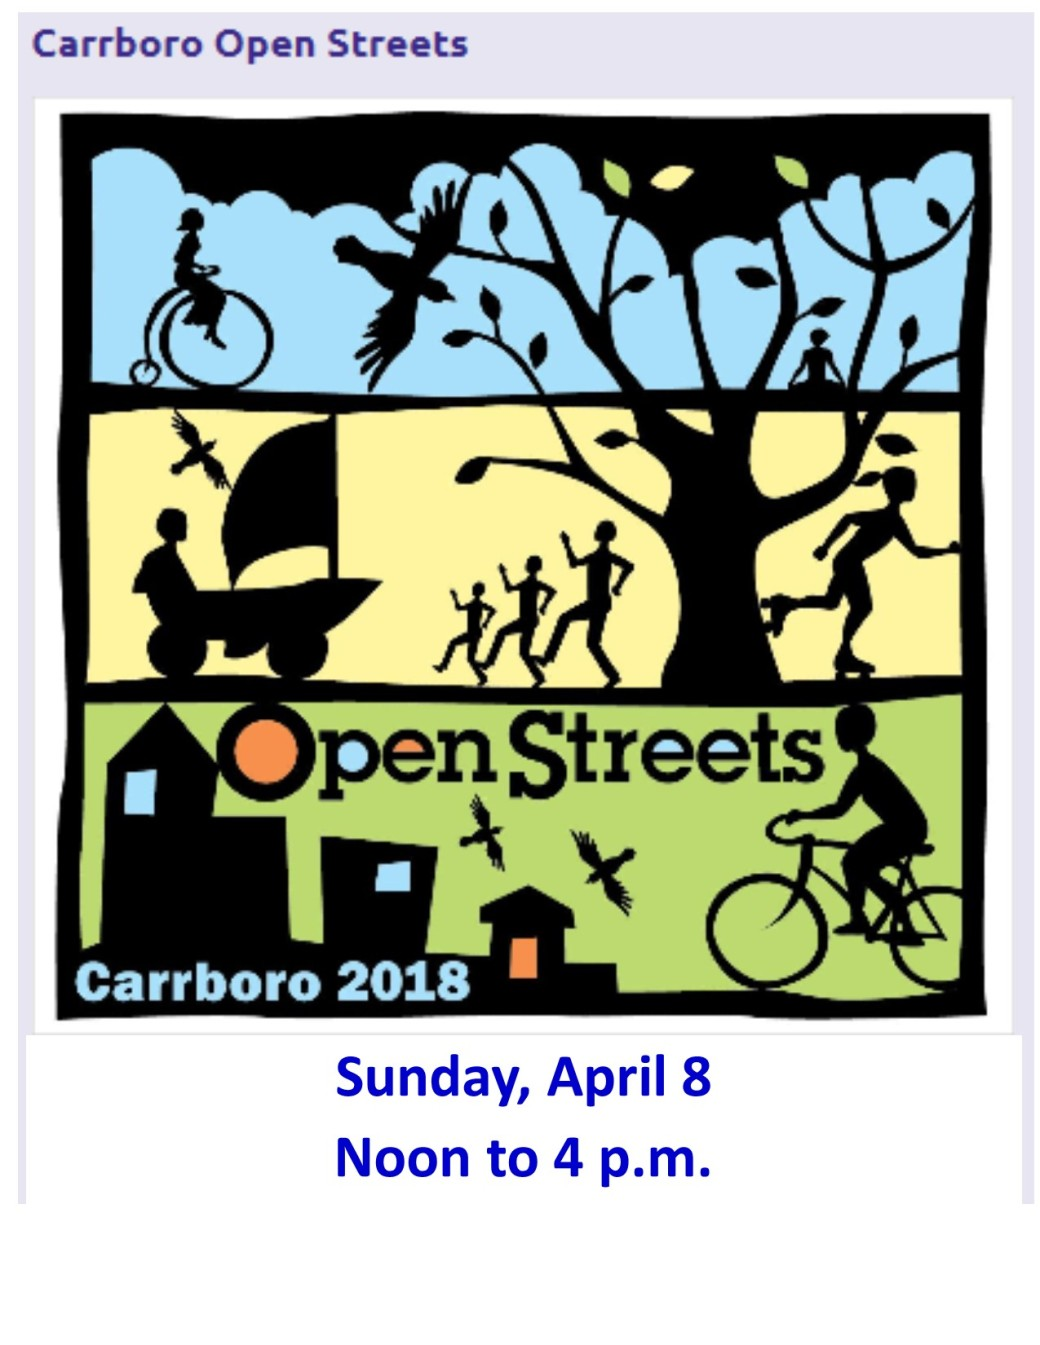 Carrboro Open Streets 2018